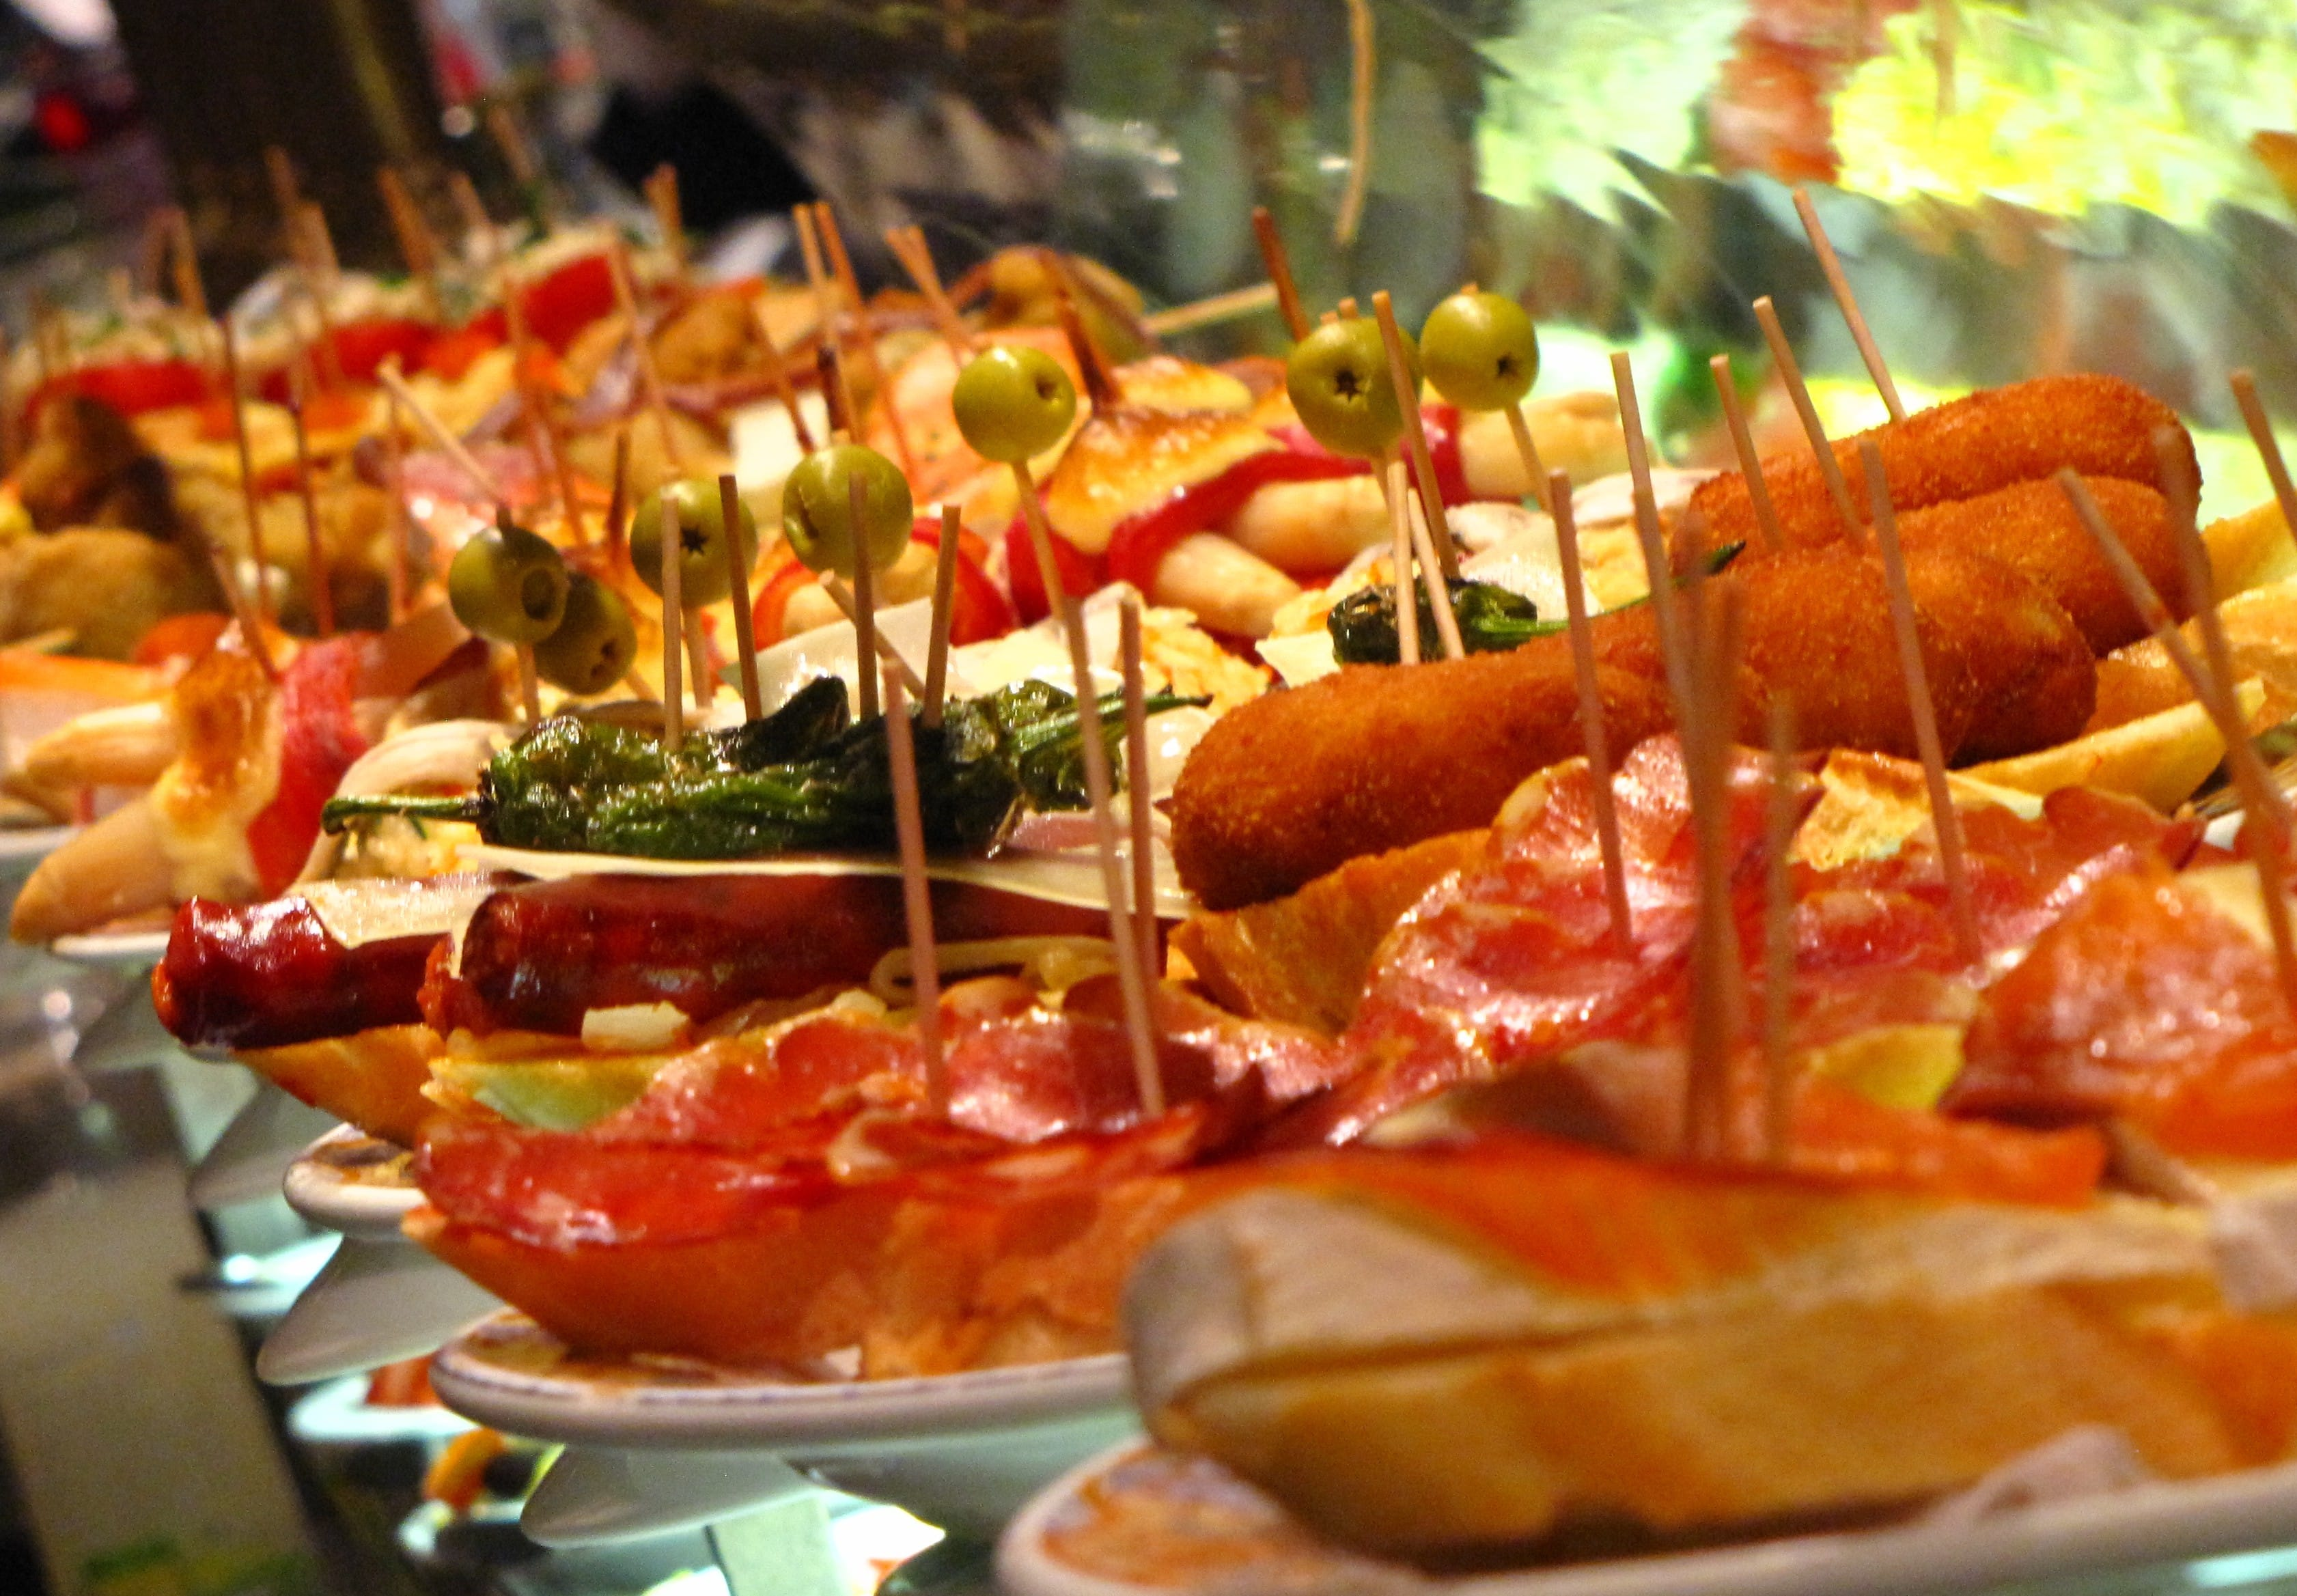 Barcelona travel tips - Tapas in Barcelona offers an array of delicious food experiences